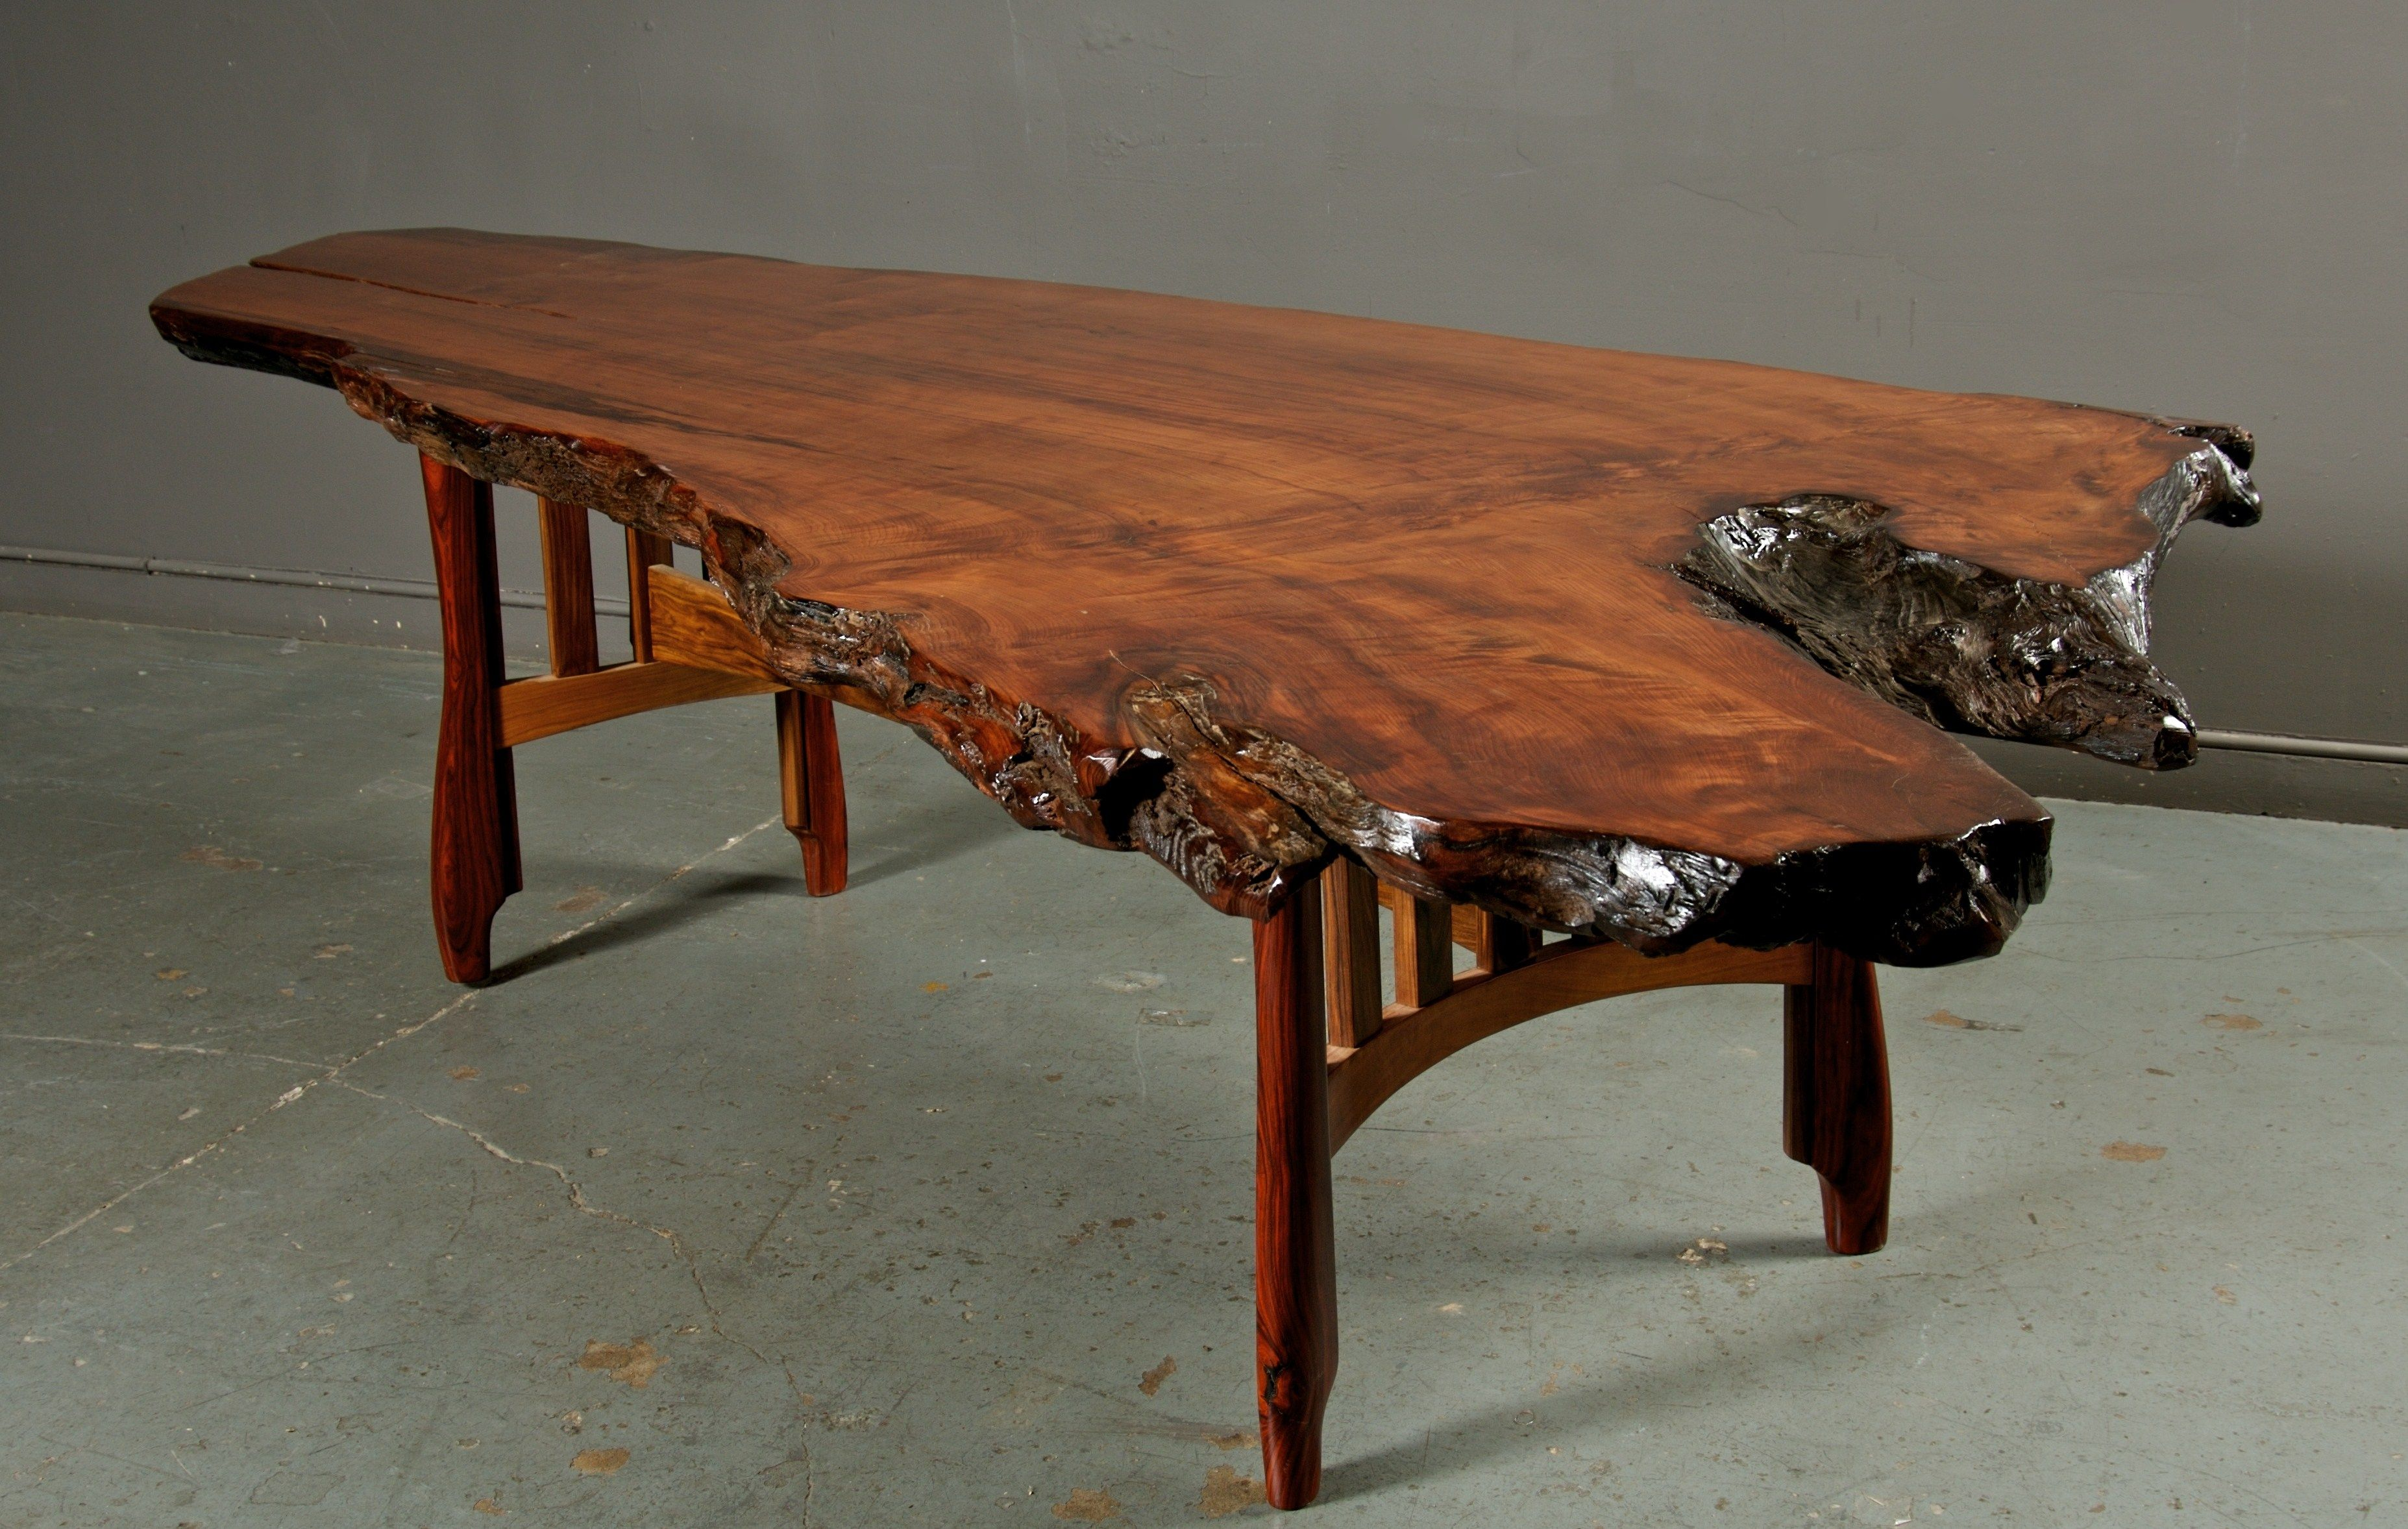 Live Edge Redwood Dining Table Bent Cherry And Cocobolo Base 56 W X130 L Www Madeinjulian Redwoodburltables Interiordesign